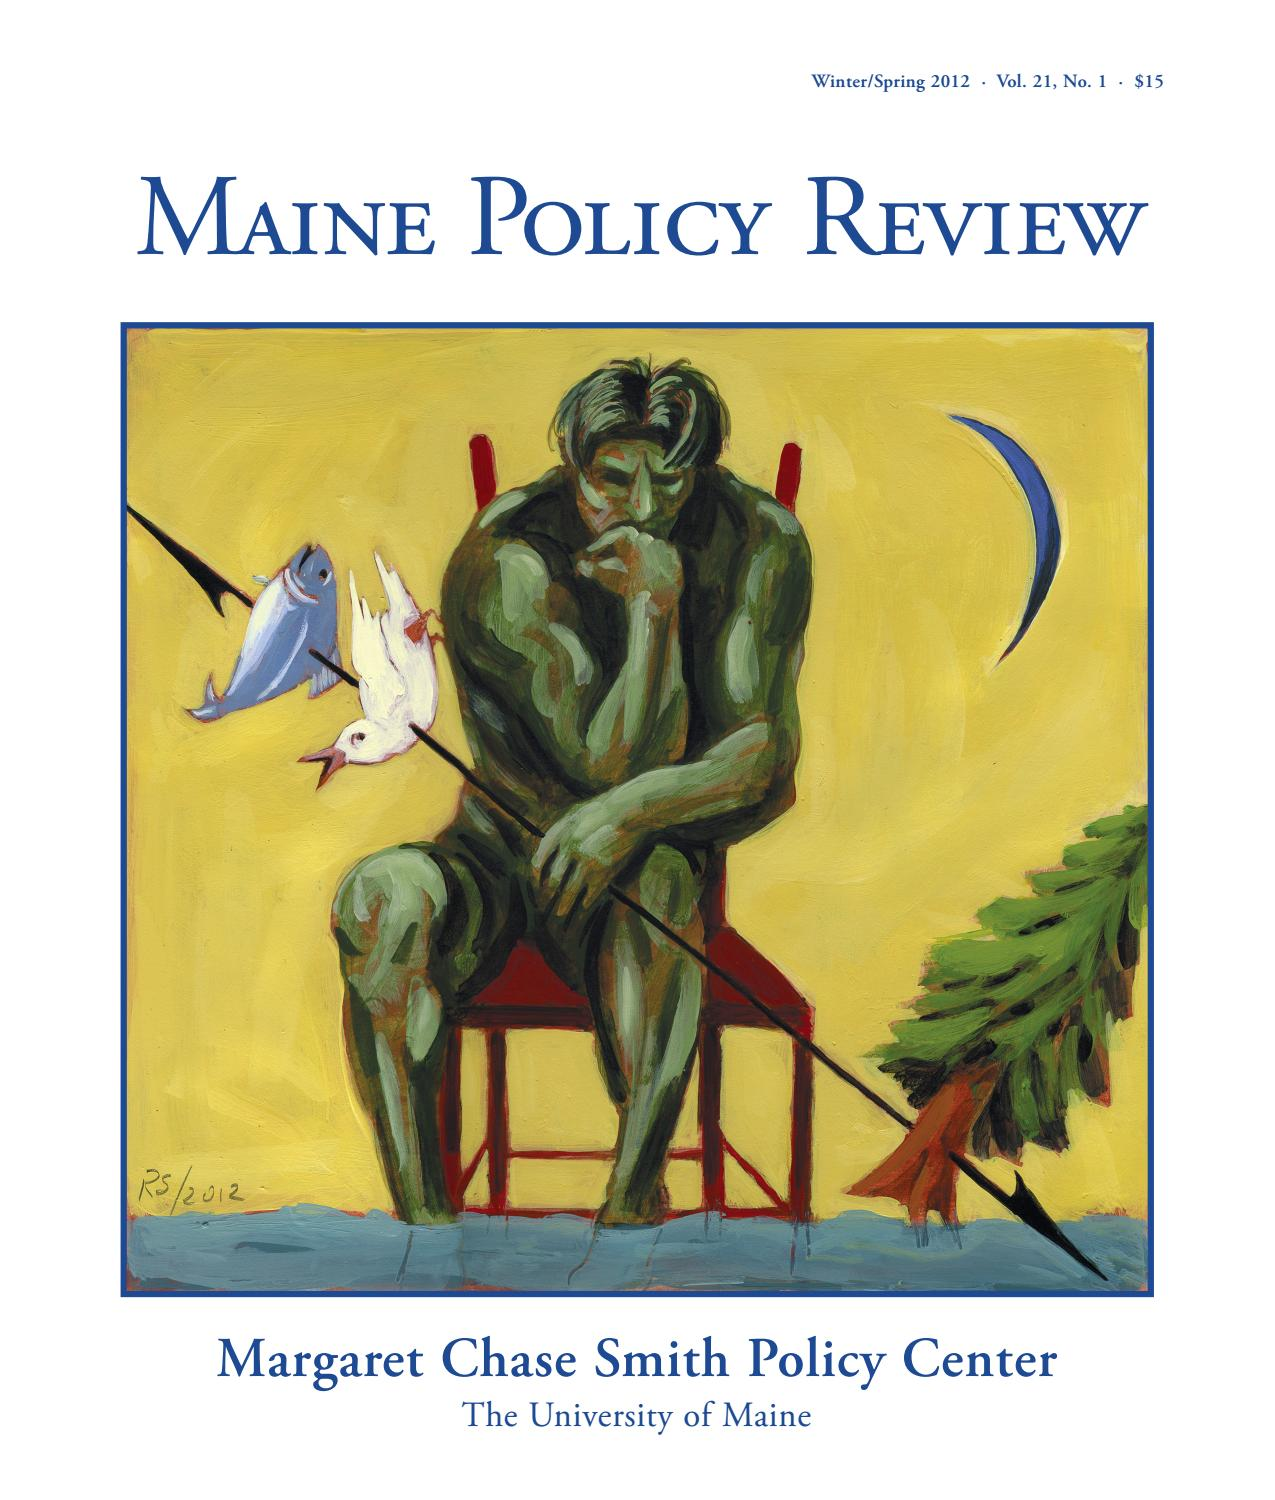 de3190f9508 Maine Policy Review Winter Spring 2012 by University of Maine - issuu